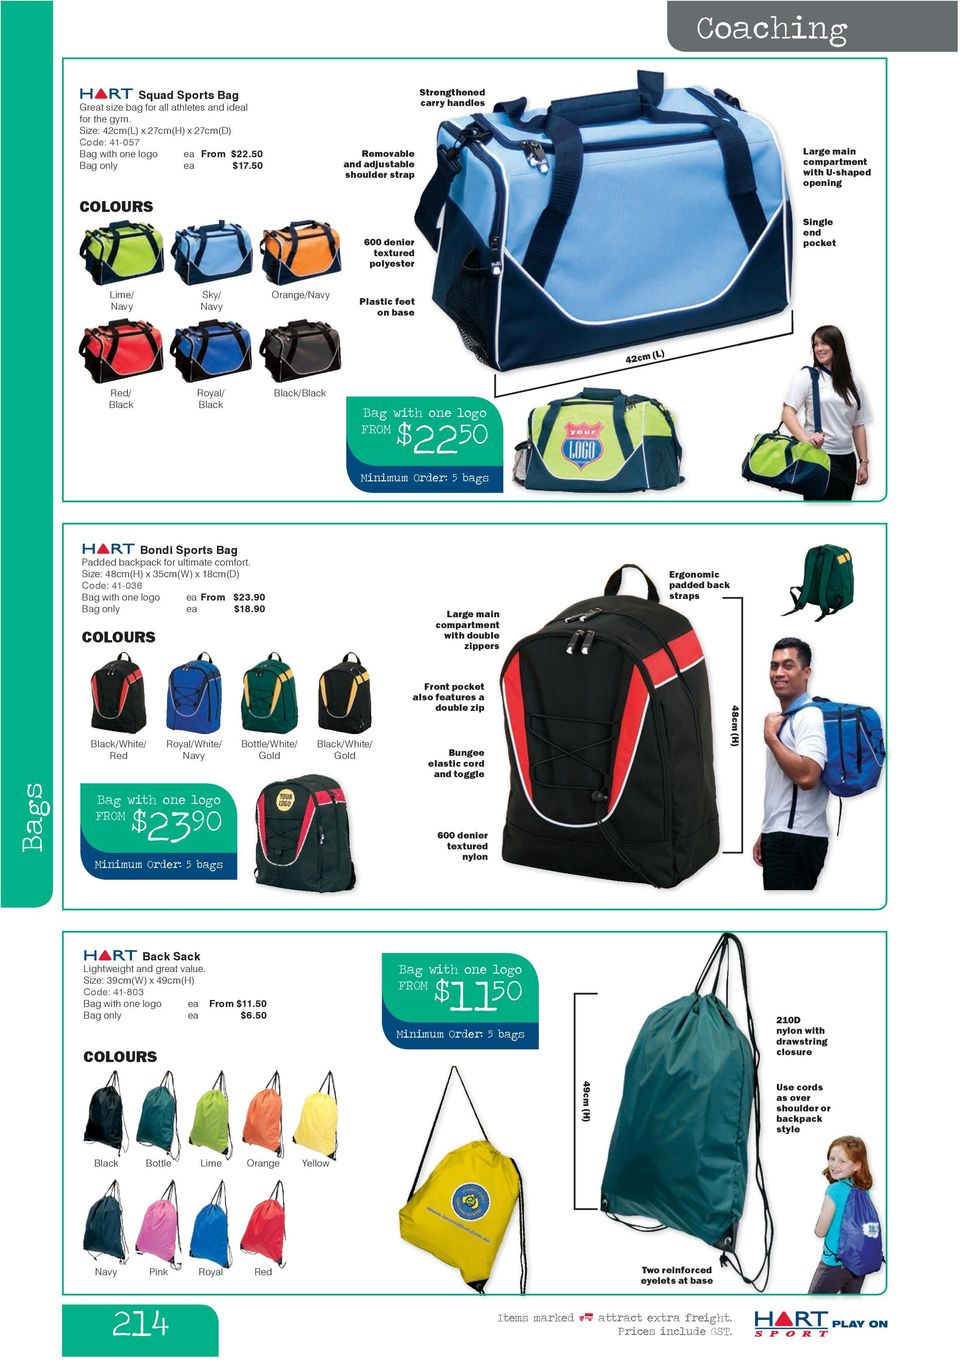 Sports Bag Padded backpack for ultimate comfort. Size: 48cm(H) x 35cm(W) x 18cm(D) Code: 41-036 ea From $23.90 Bag only ea $18.